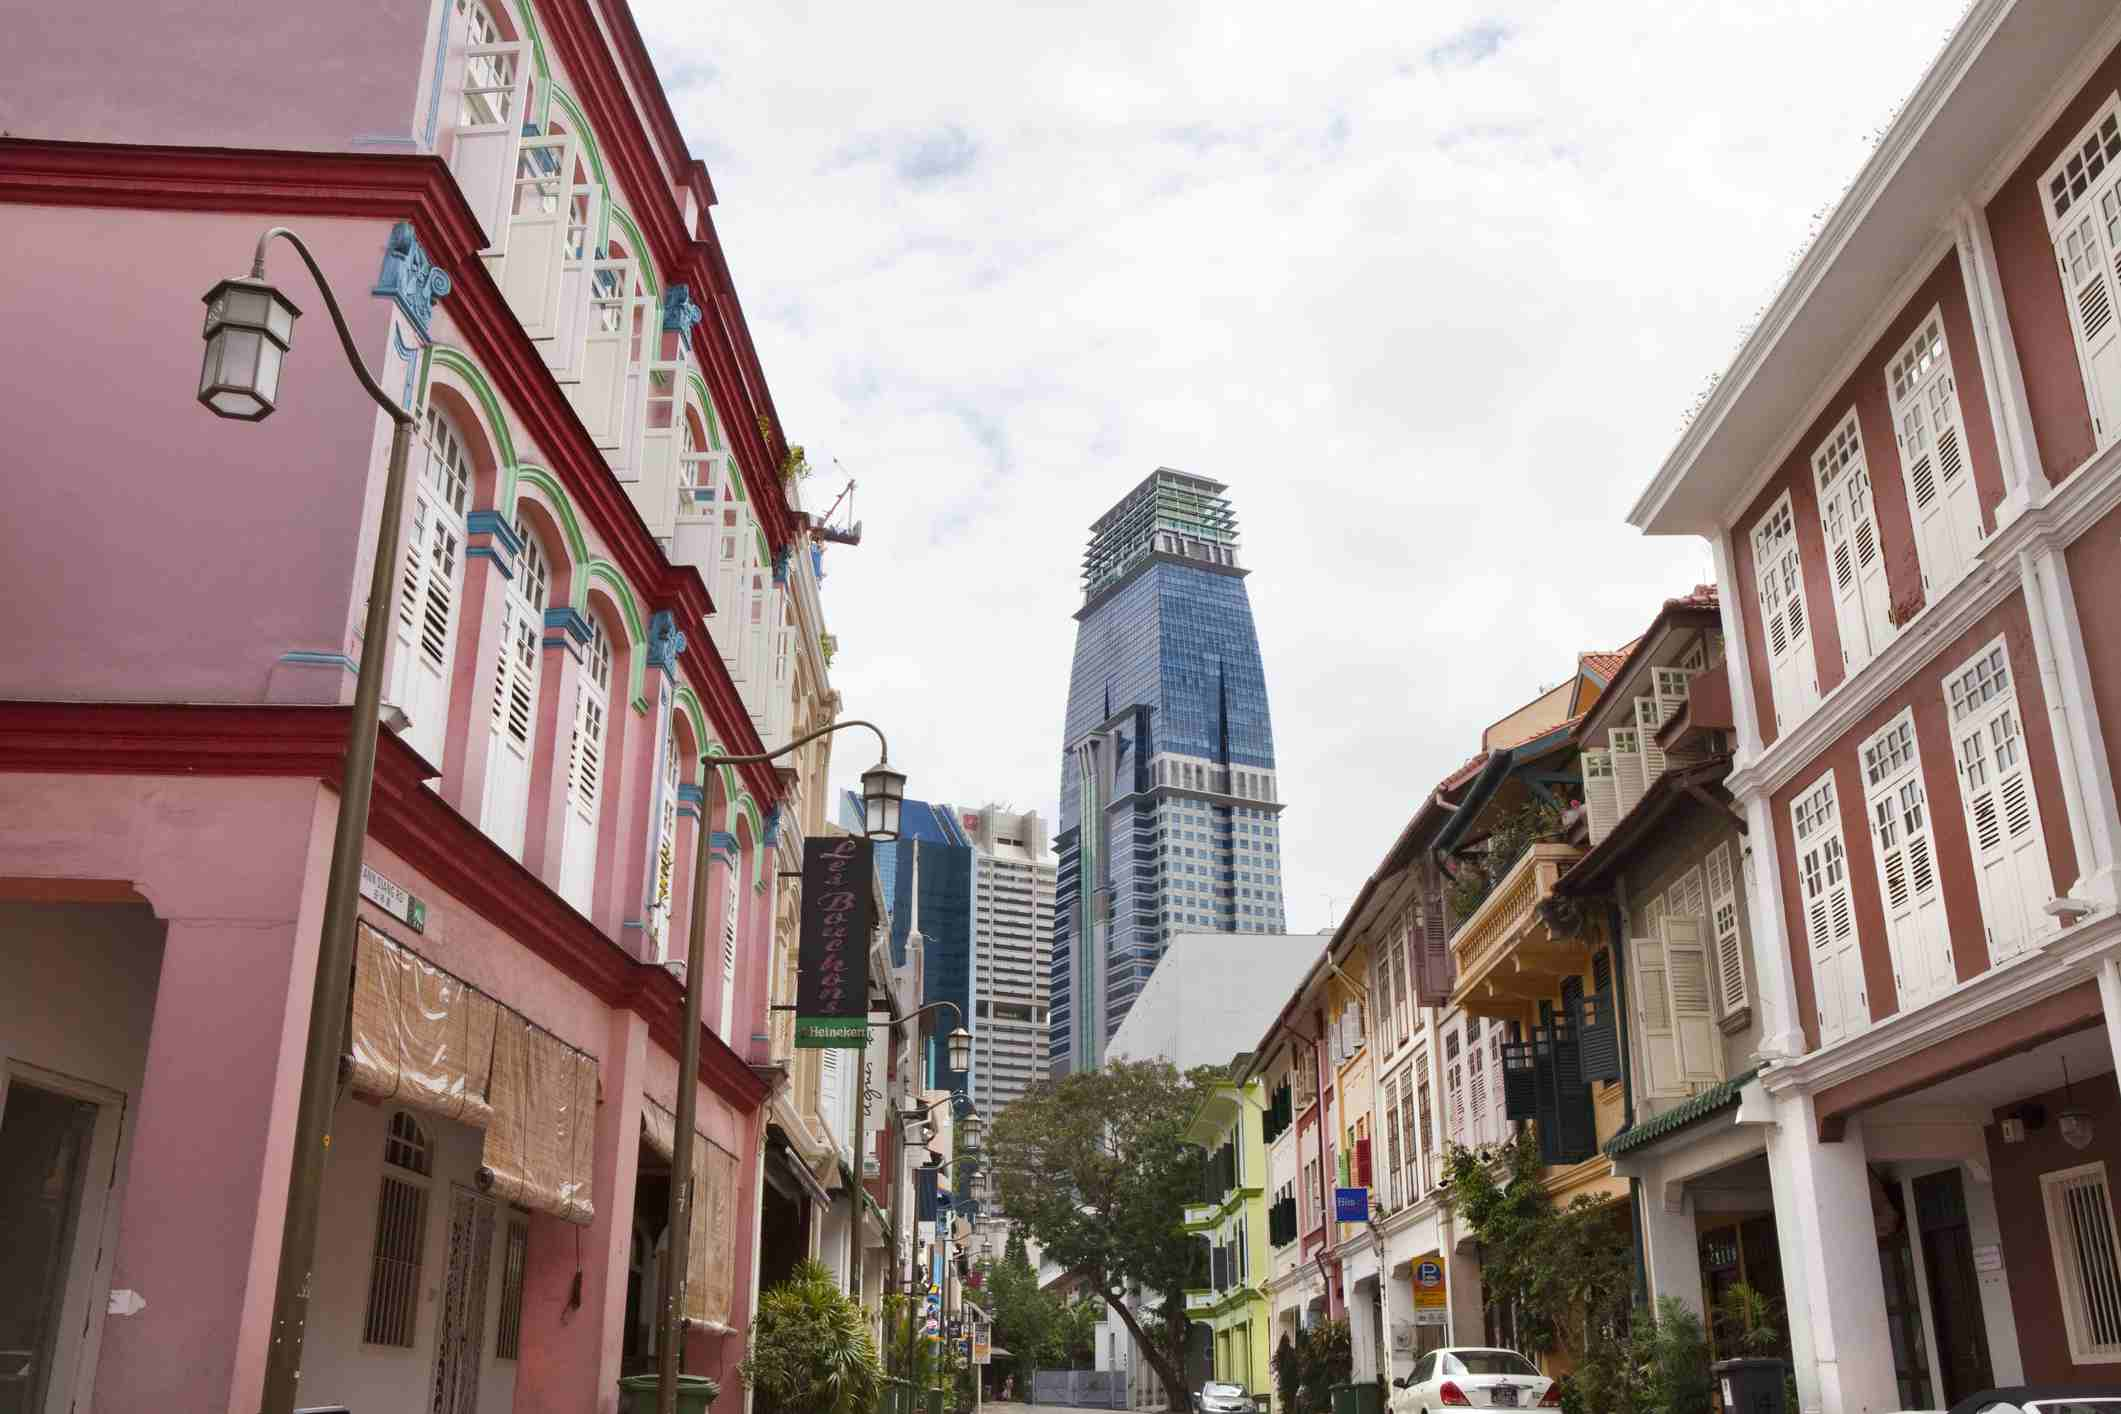 Colonial houses on Ann Siang Road, Singapore